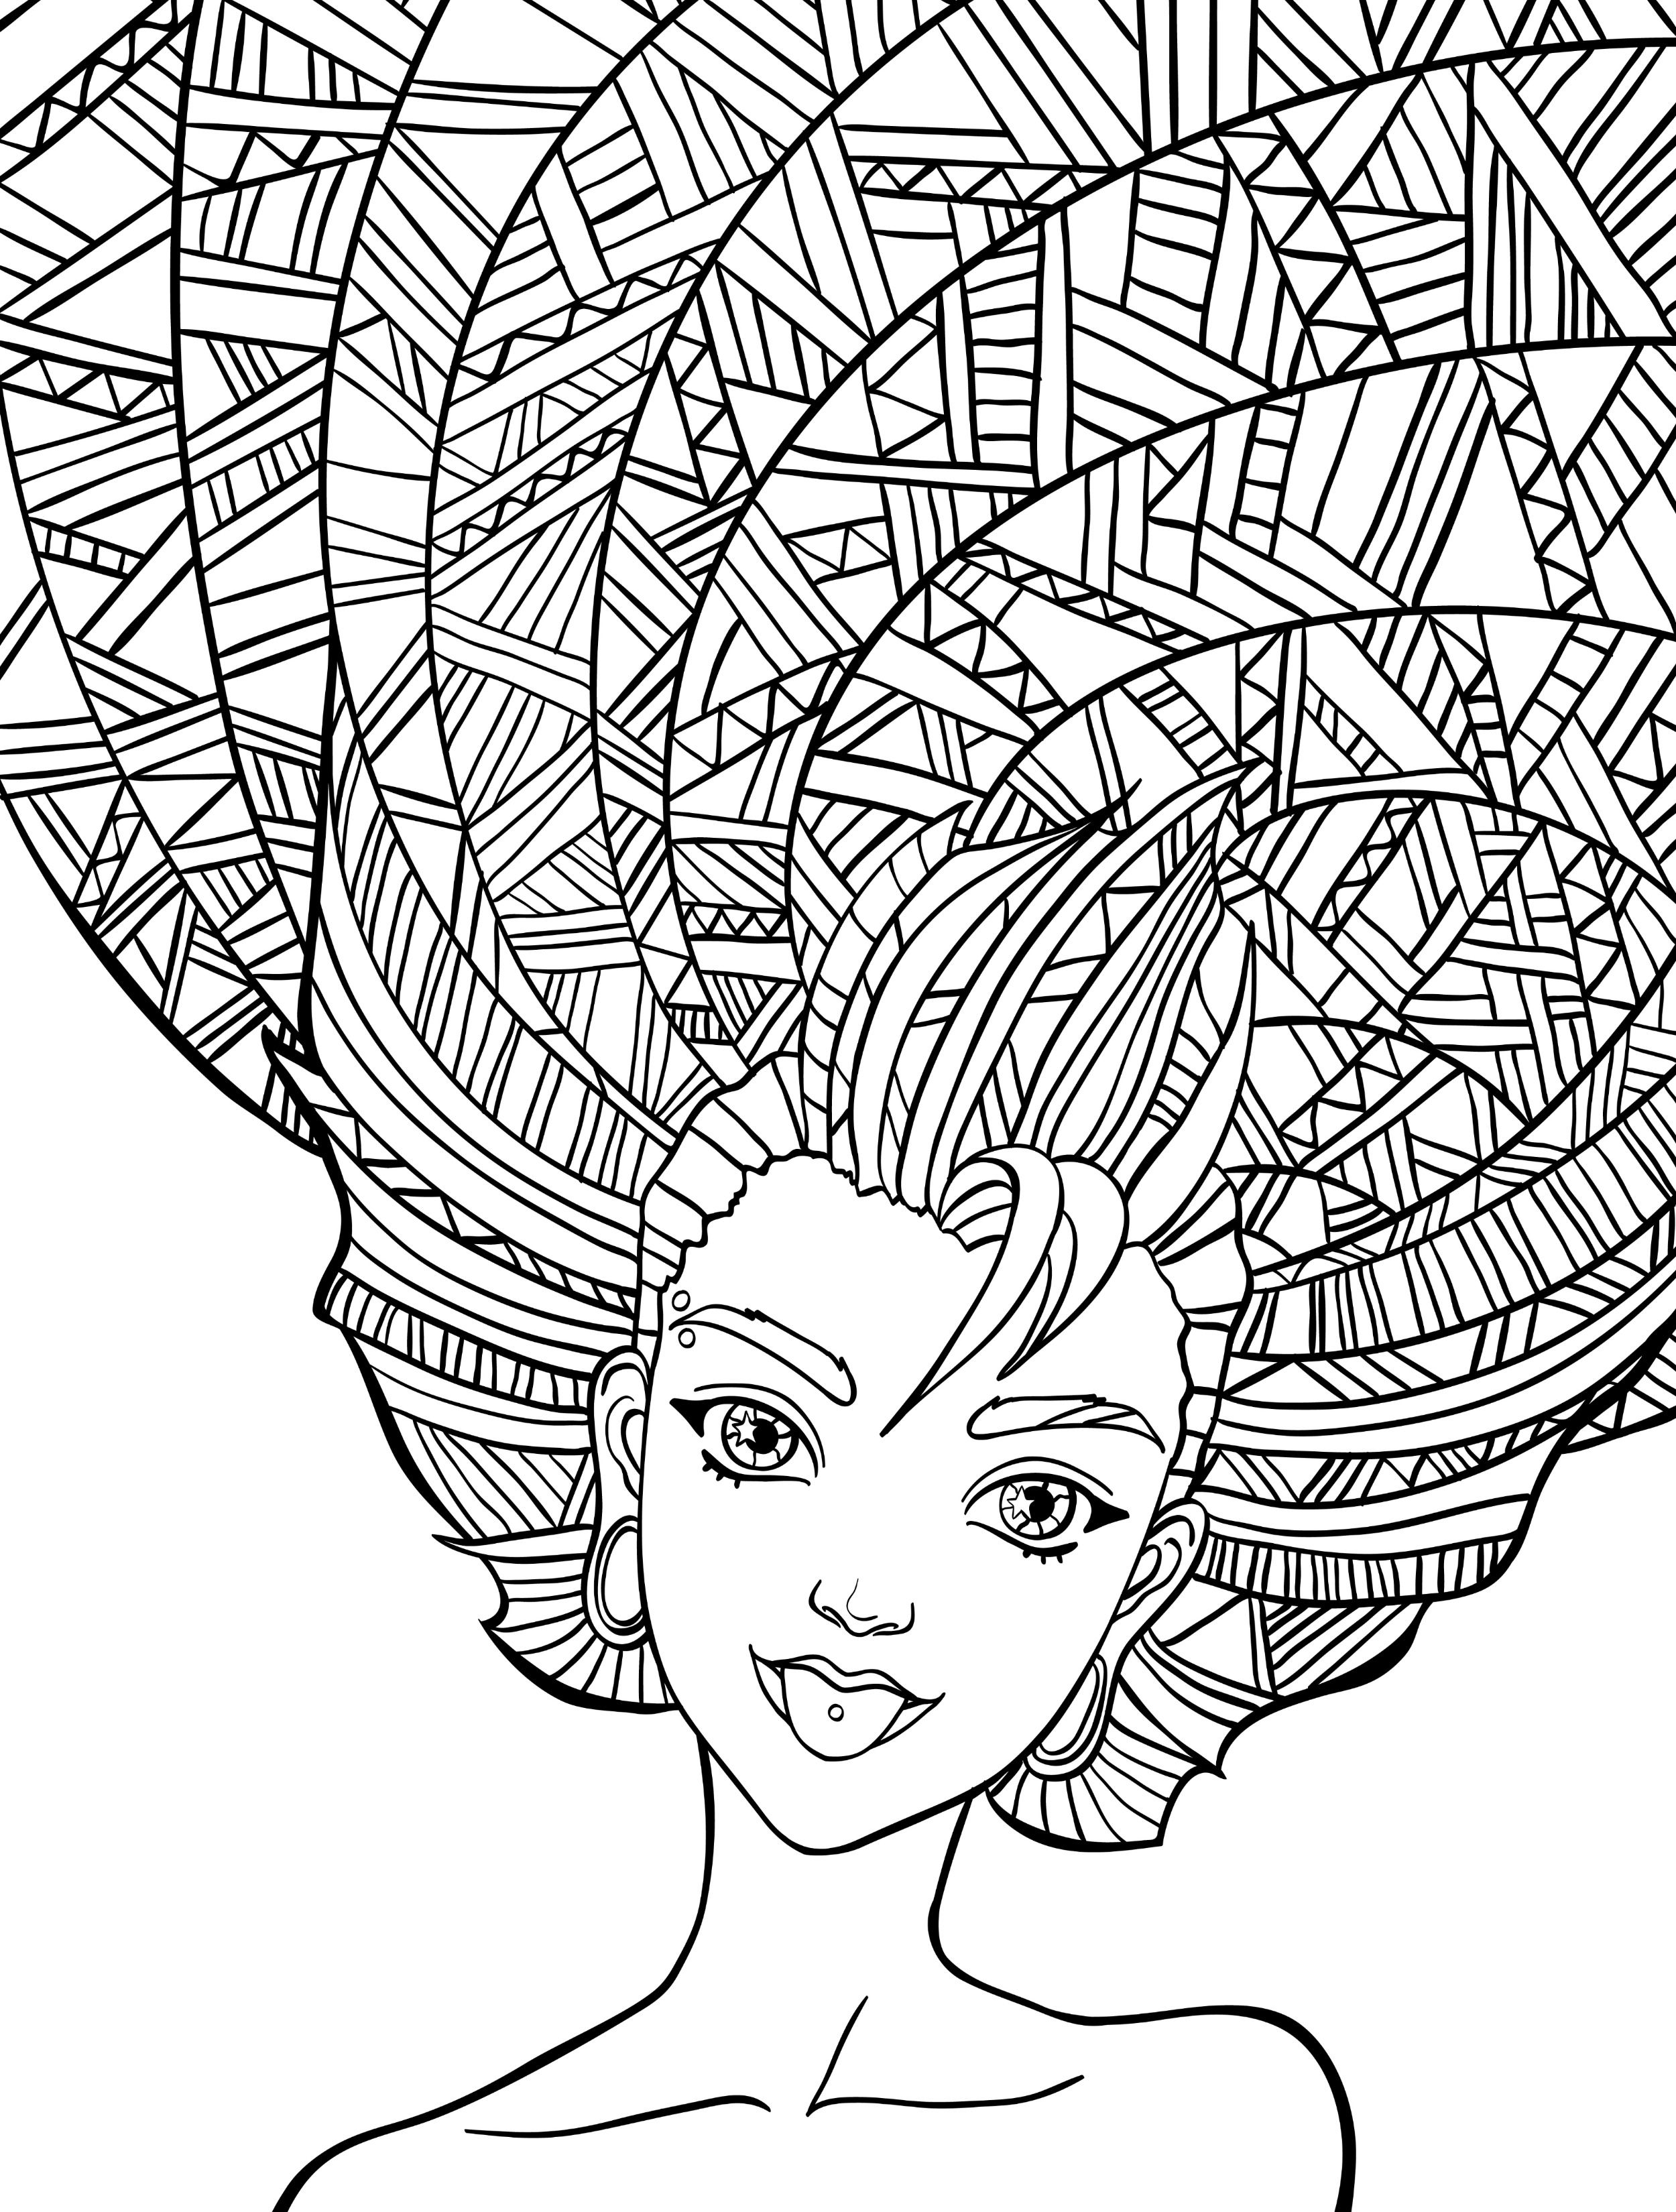 10 Crazy Hair Adult Coloring Pages Free Adult Coloring